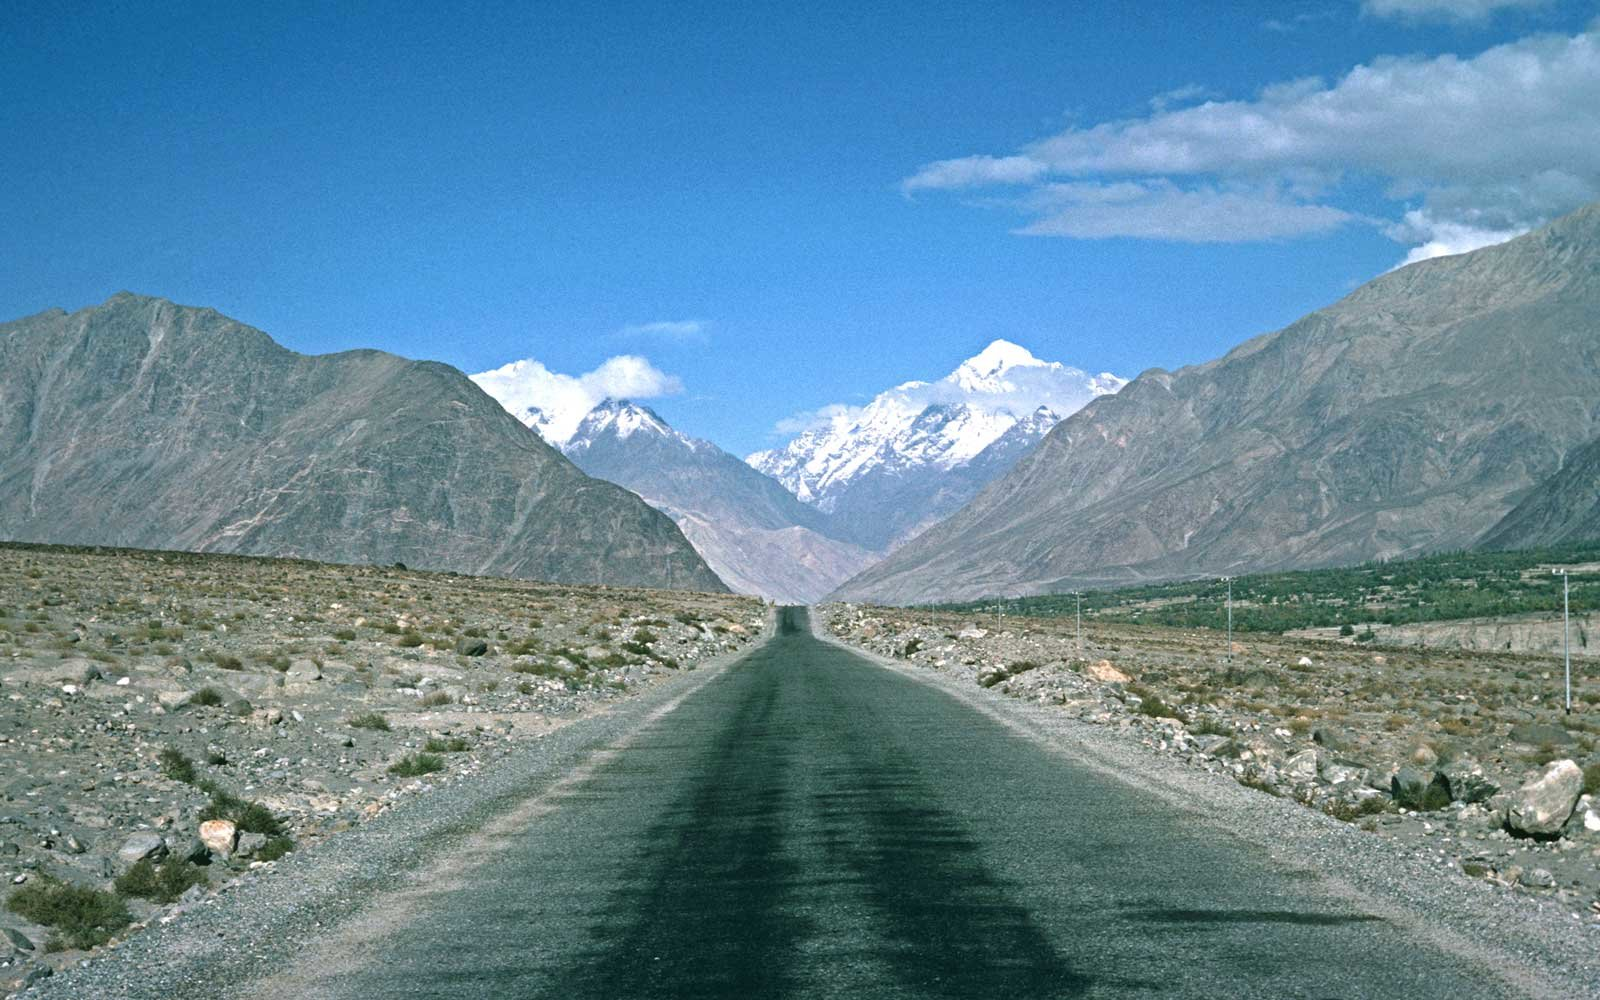 Karakoram Mountains, Karakoram Highway, Silk Road, Gilgit-Baltistan Administrative Area, Pakistan